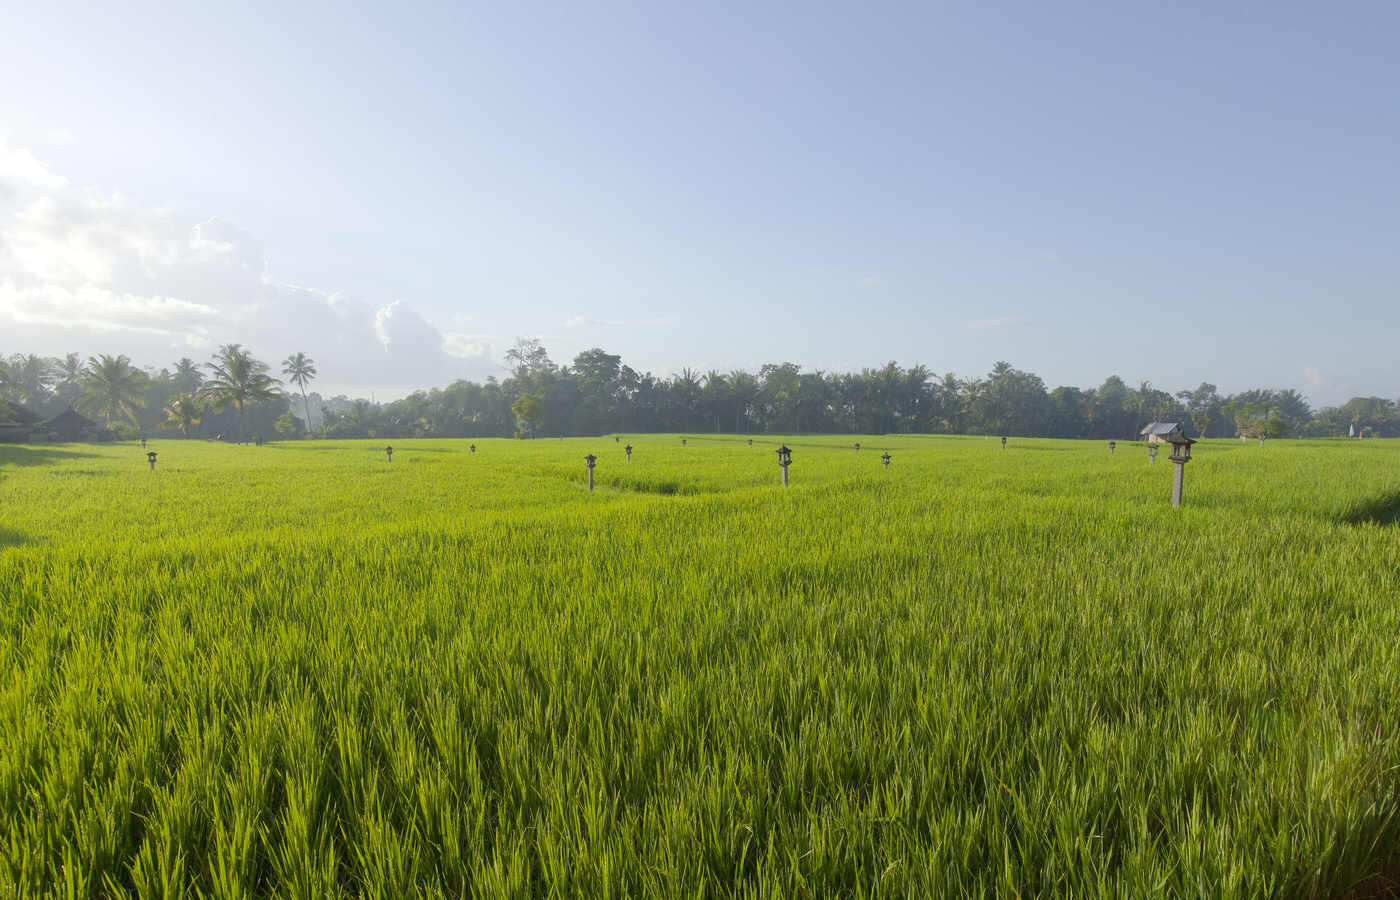 CTG-Overview-Outdoor-Rice Field View 01.jpg